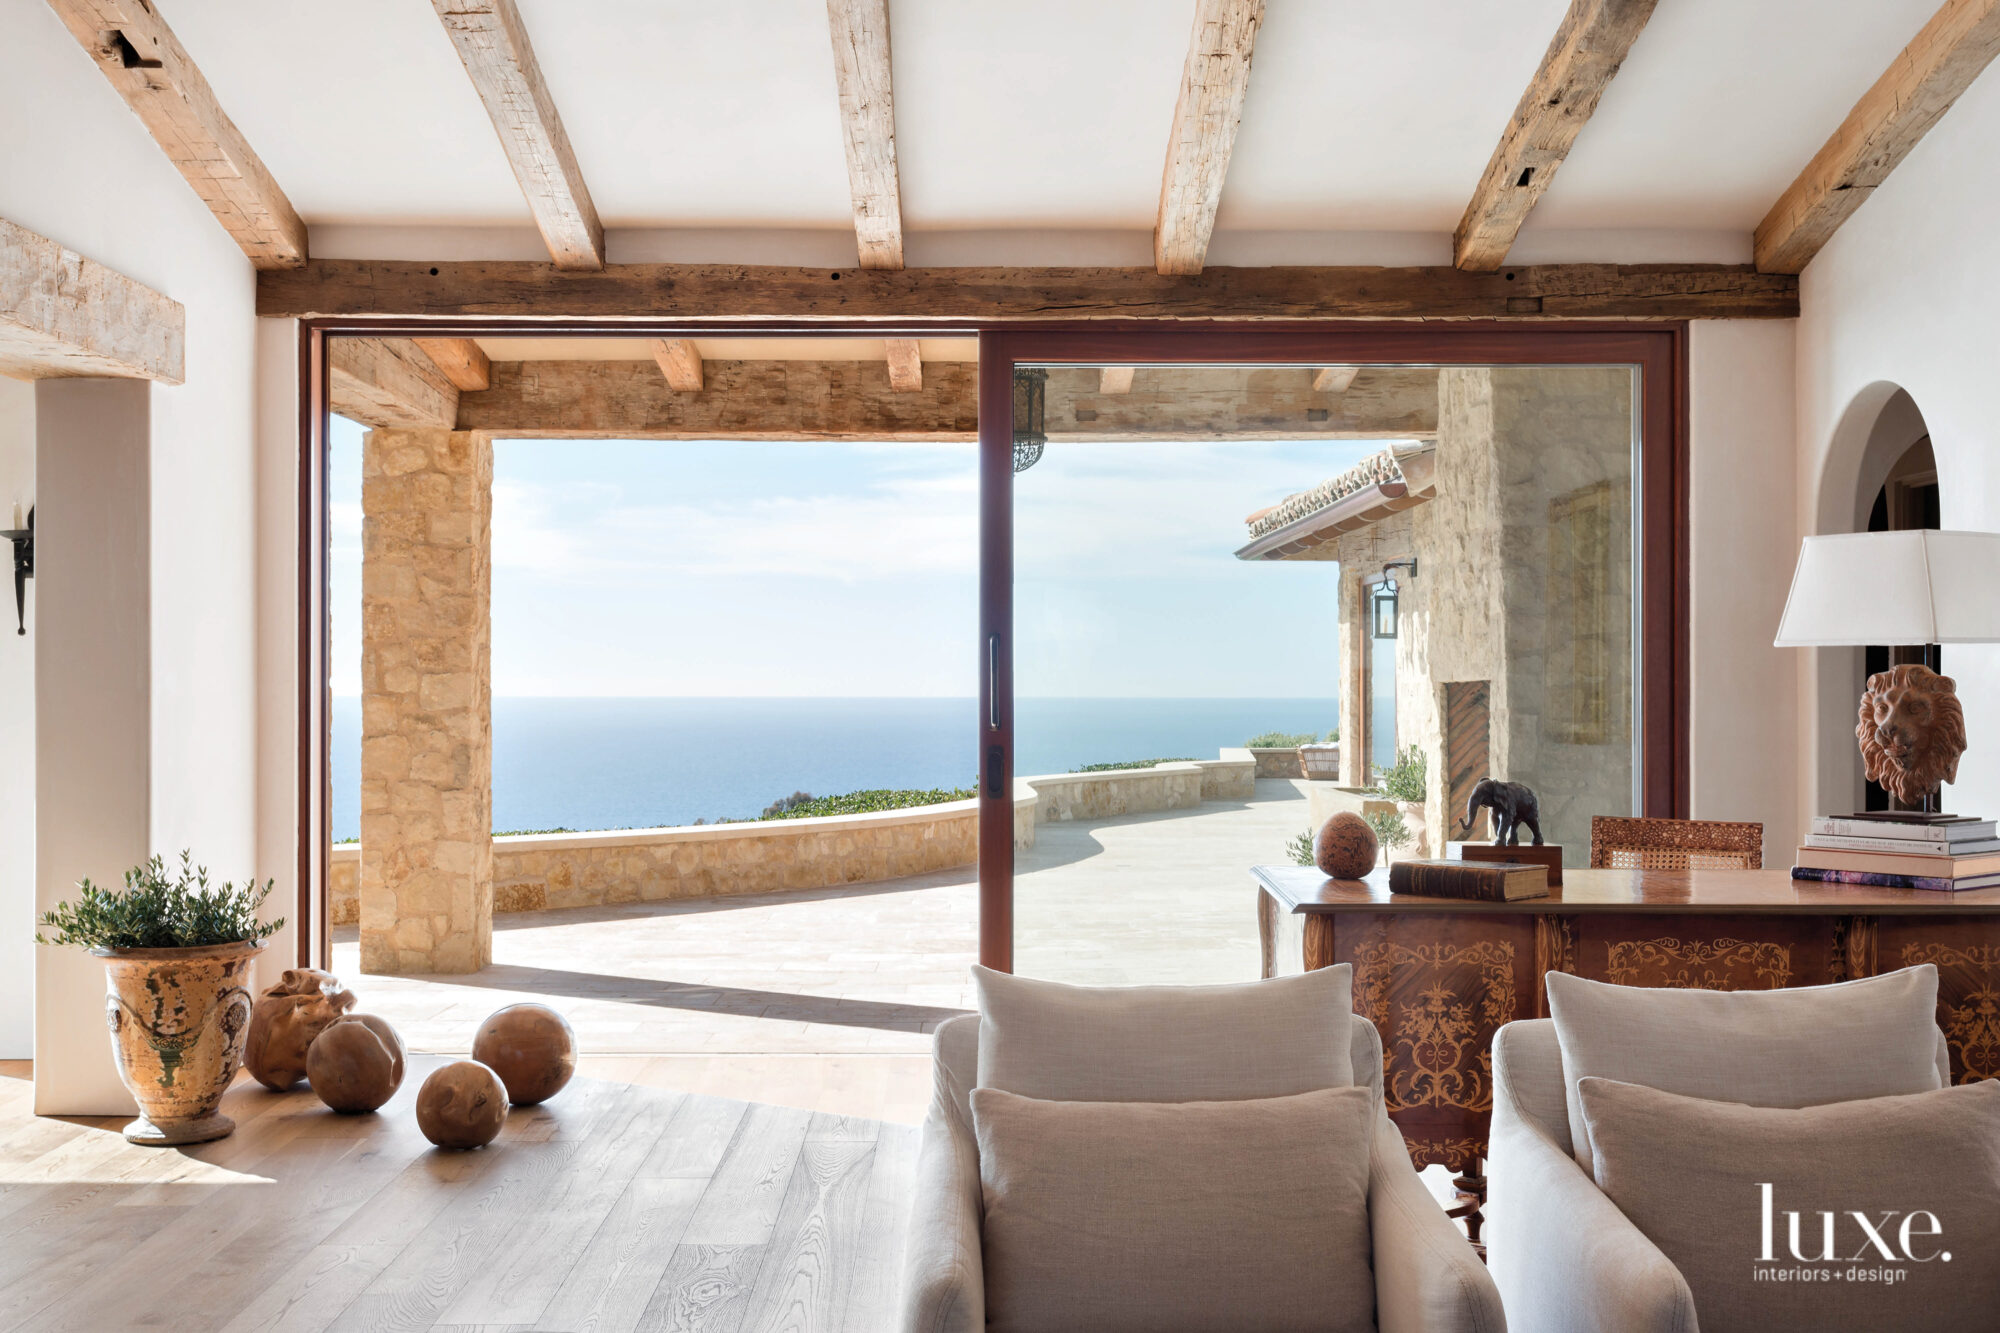 View from living room through sliders to terrace and ocean view